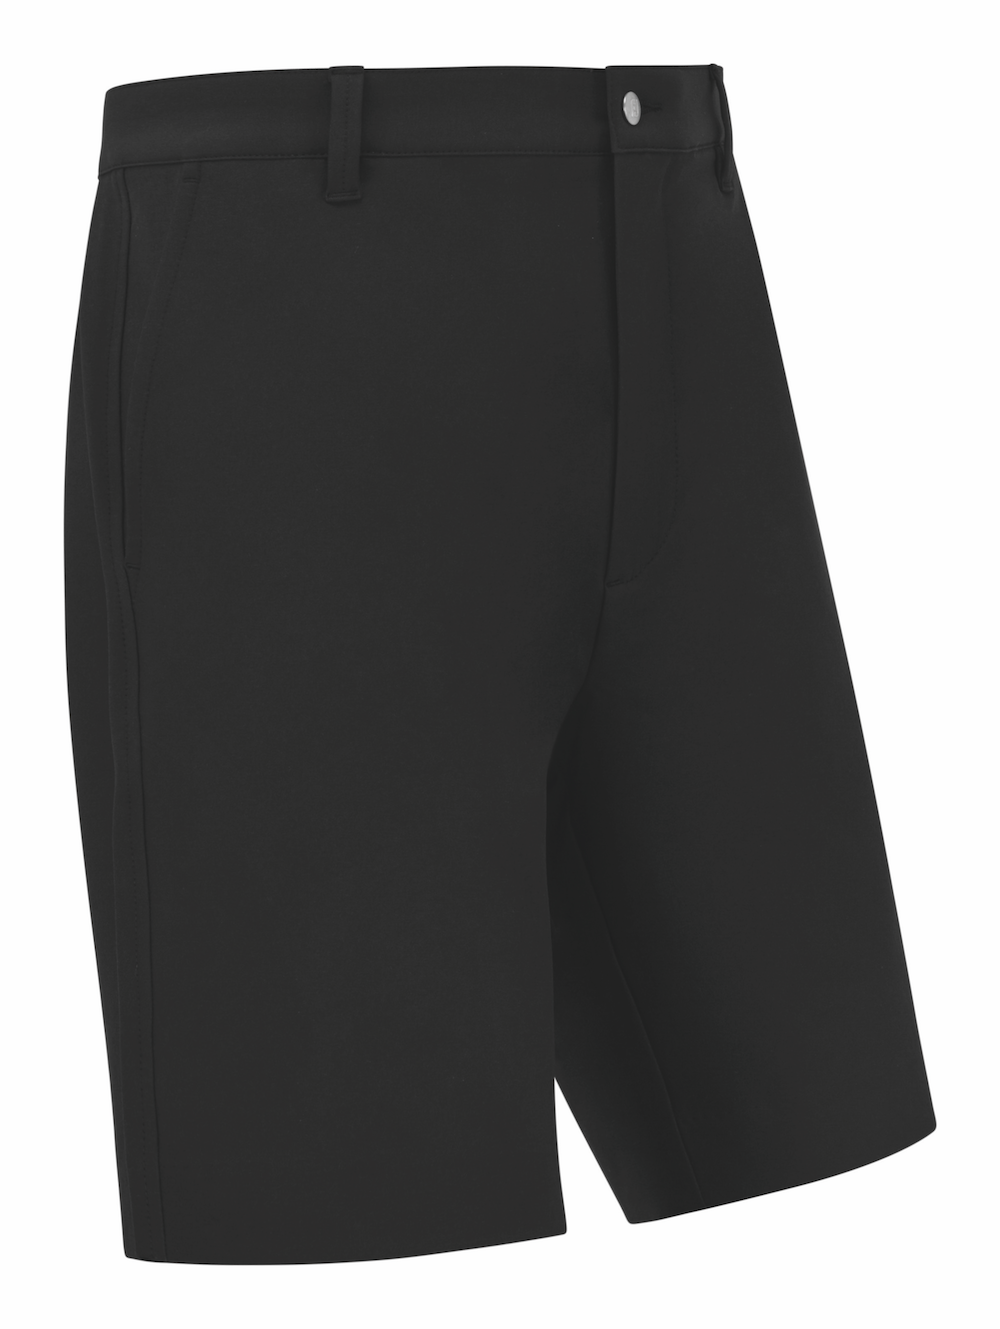 Stuttbuxur FJ Performance Reg Fit Short